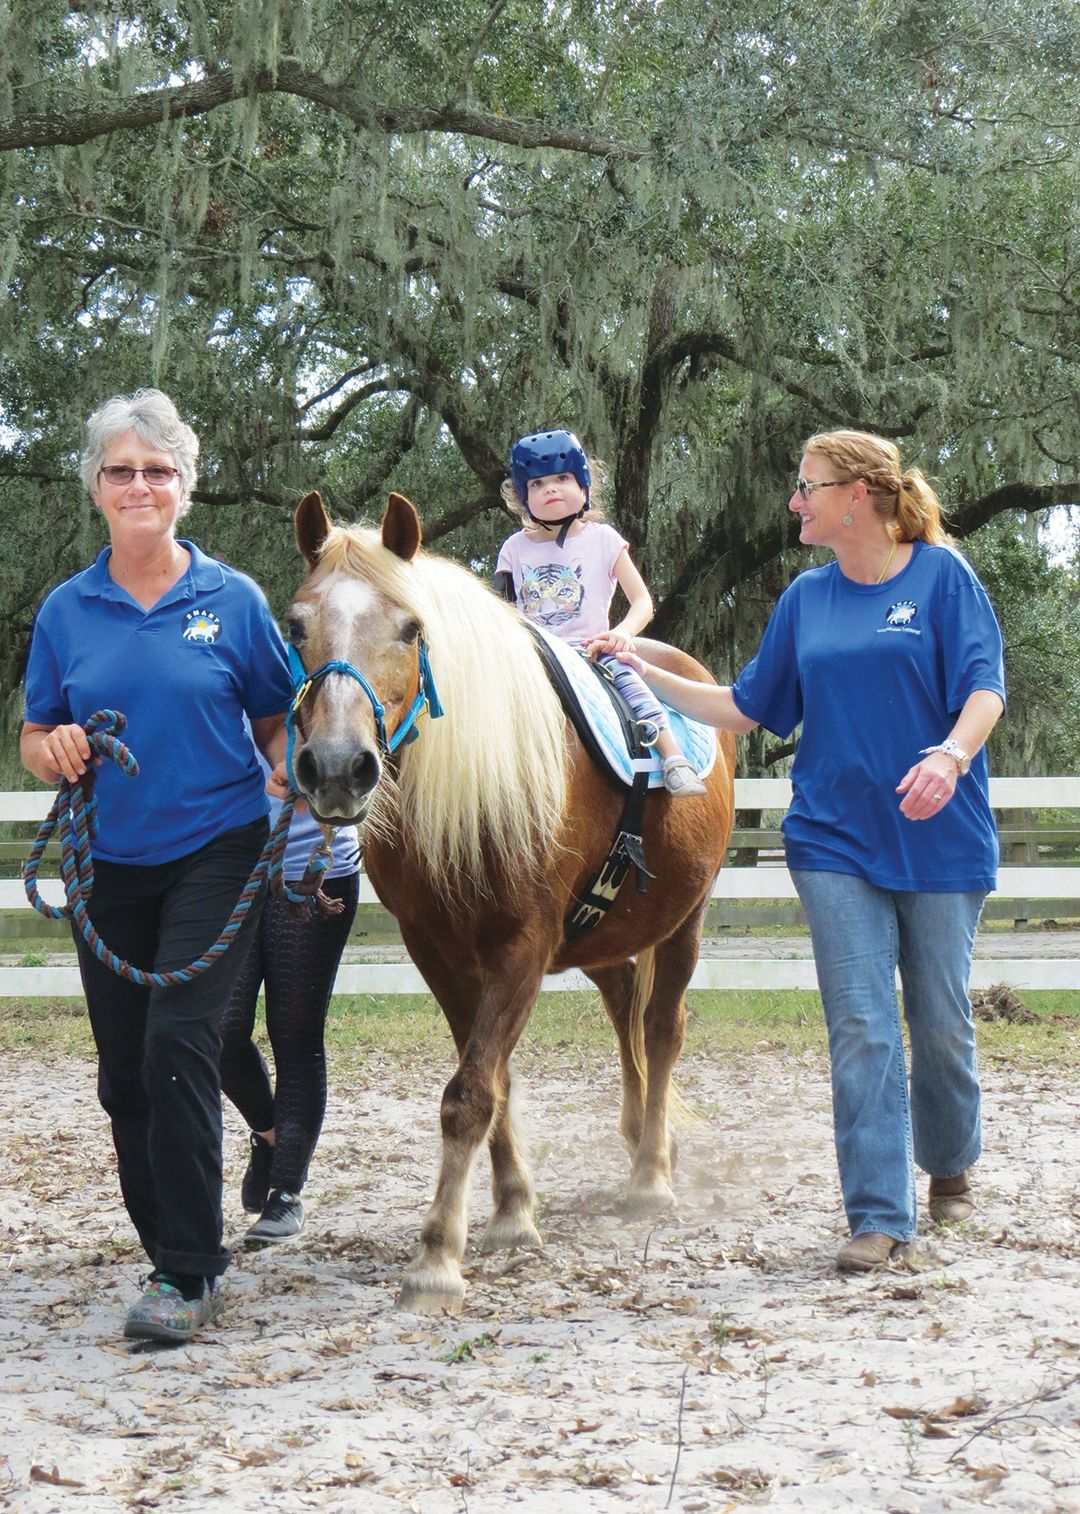 ccfc1b3b6 Gail Clifton Teaches Therapeutic Horseback Riding to People with ...